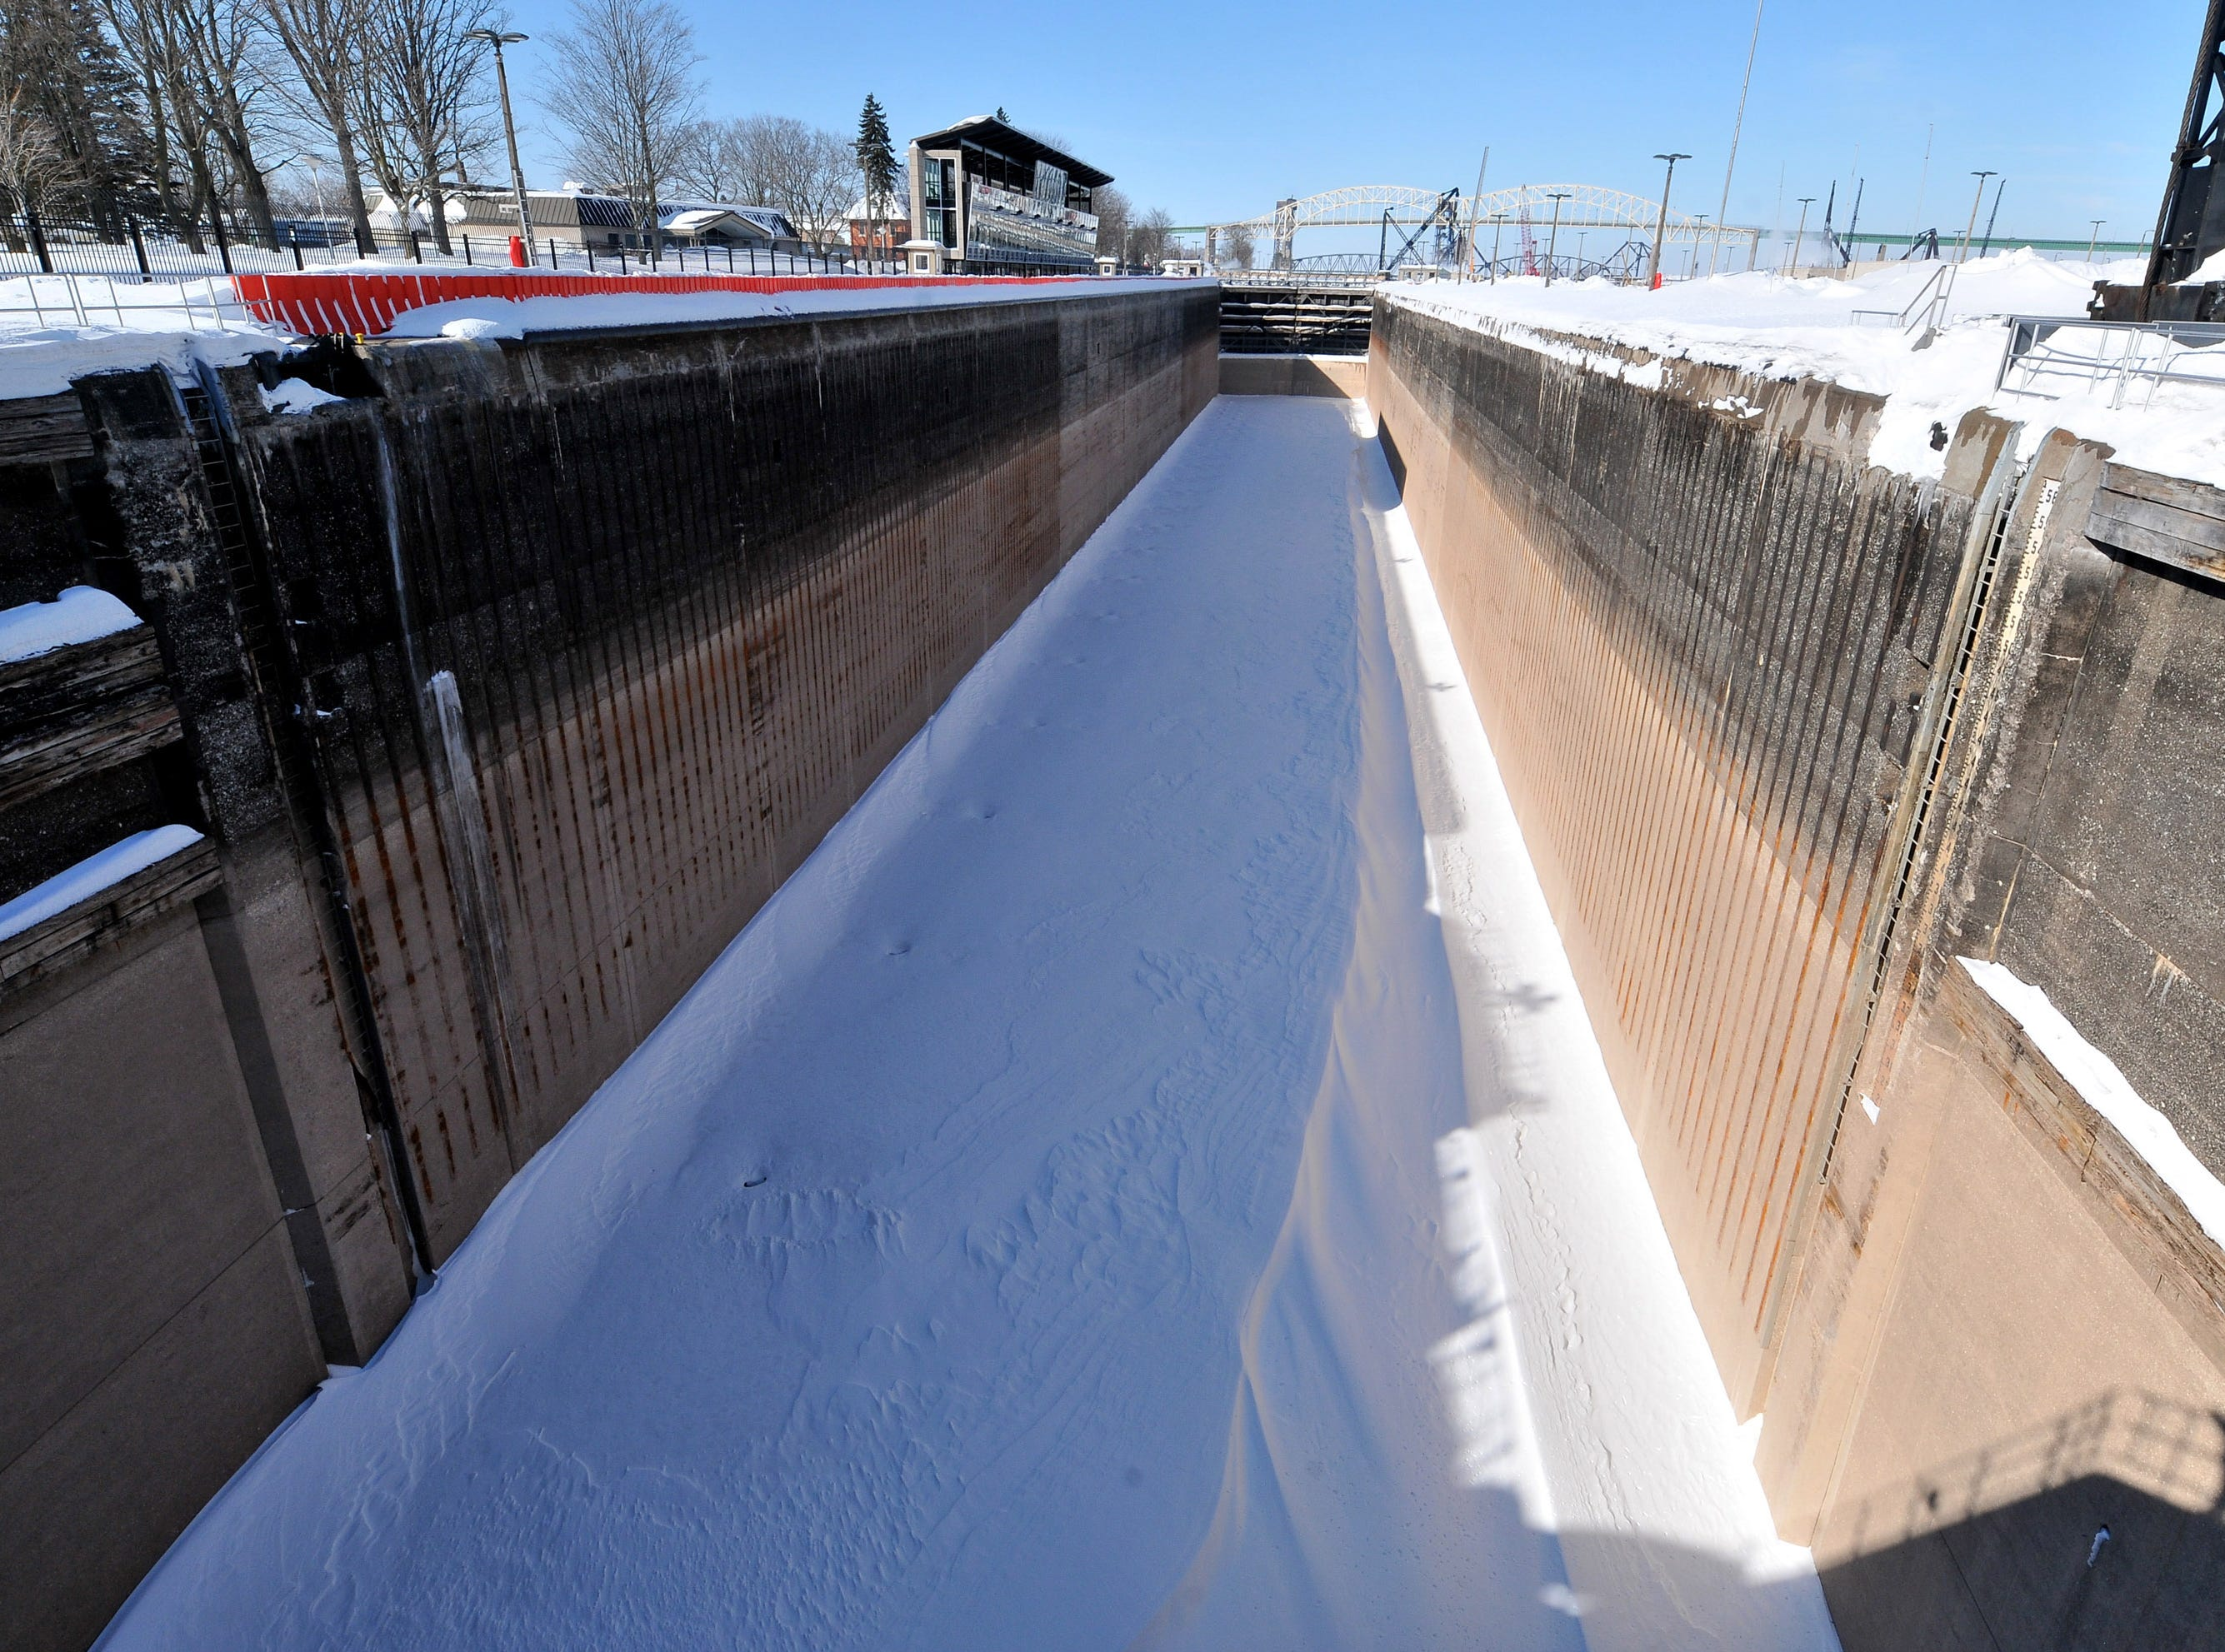 Winter maintenance and repairs in the MacArthur shipping lock in Sault Ste. Marie are nearing completion, in time for the opening of the Great Lakes shipping season on March 25. Snow and ice will be melted down with steam prior to allowing water back into the structure.